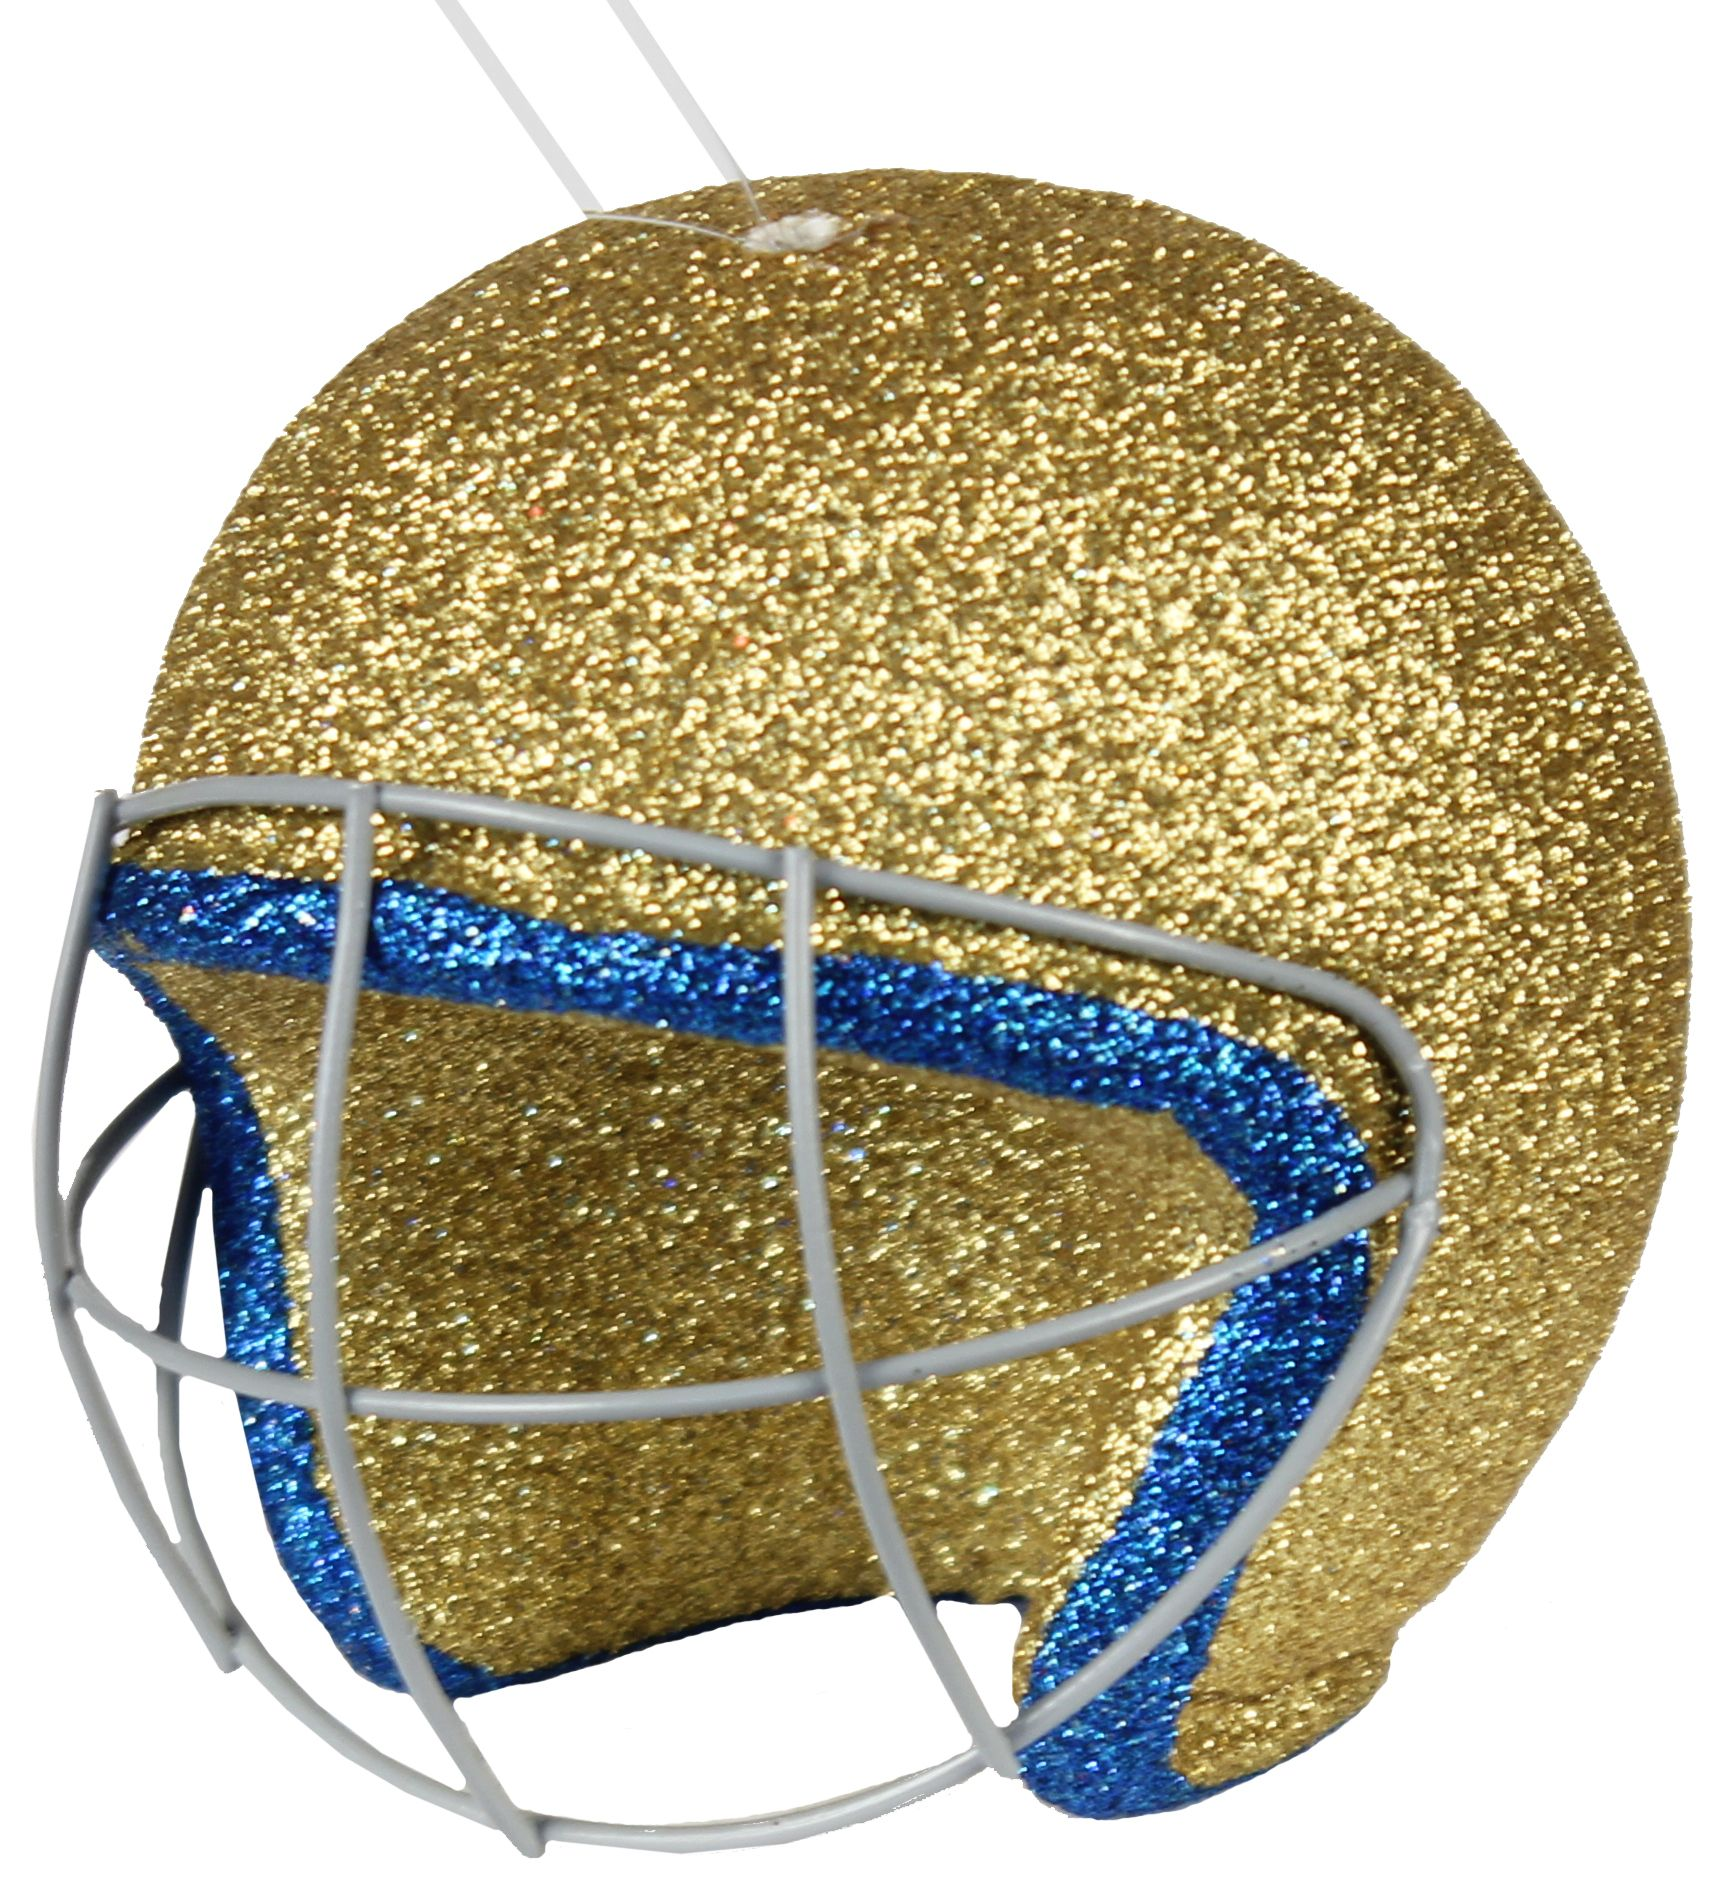 4 Football Helmet Ornament #Gold #Blue #Helmet #Football